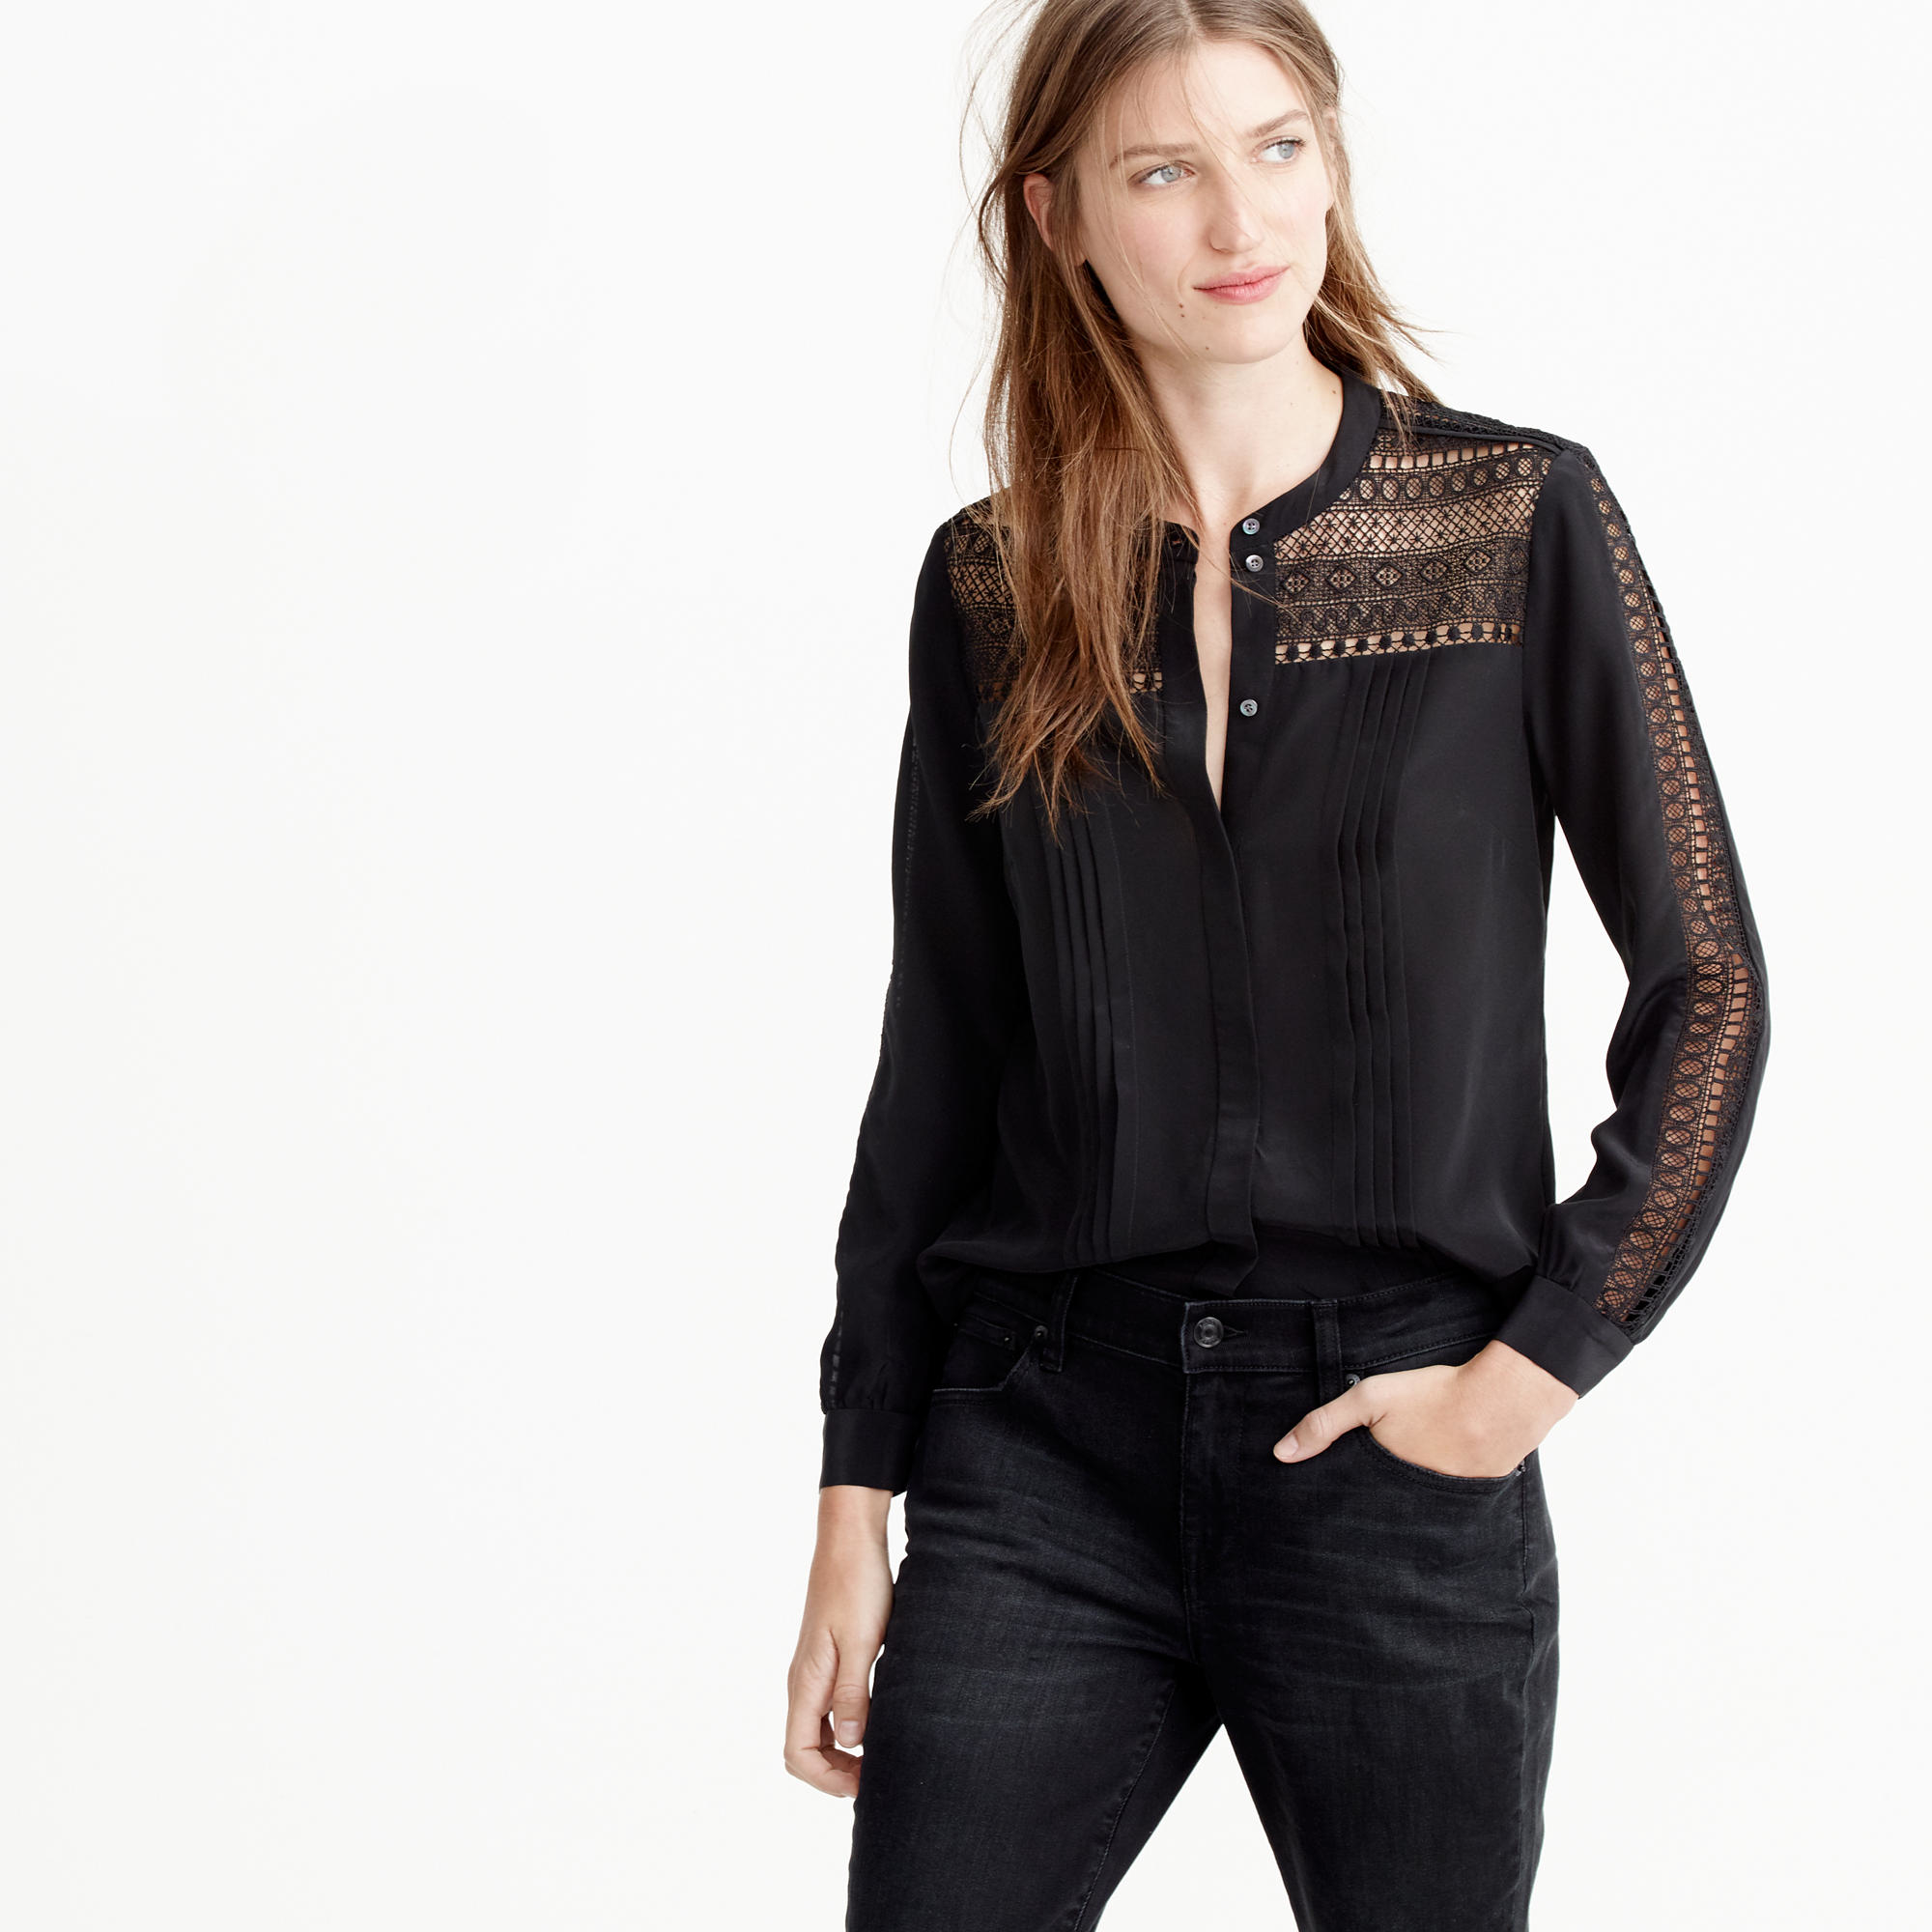 Lyst - J.Crew Collection Silk And Lace Blouse in Black 91fab7cda4